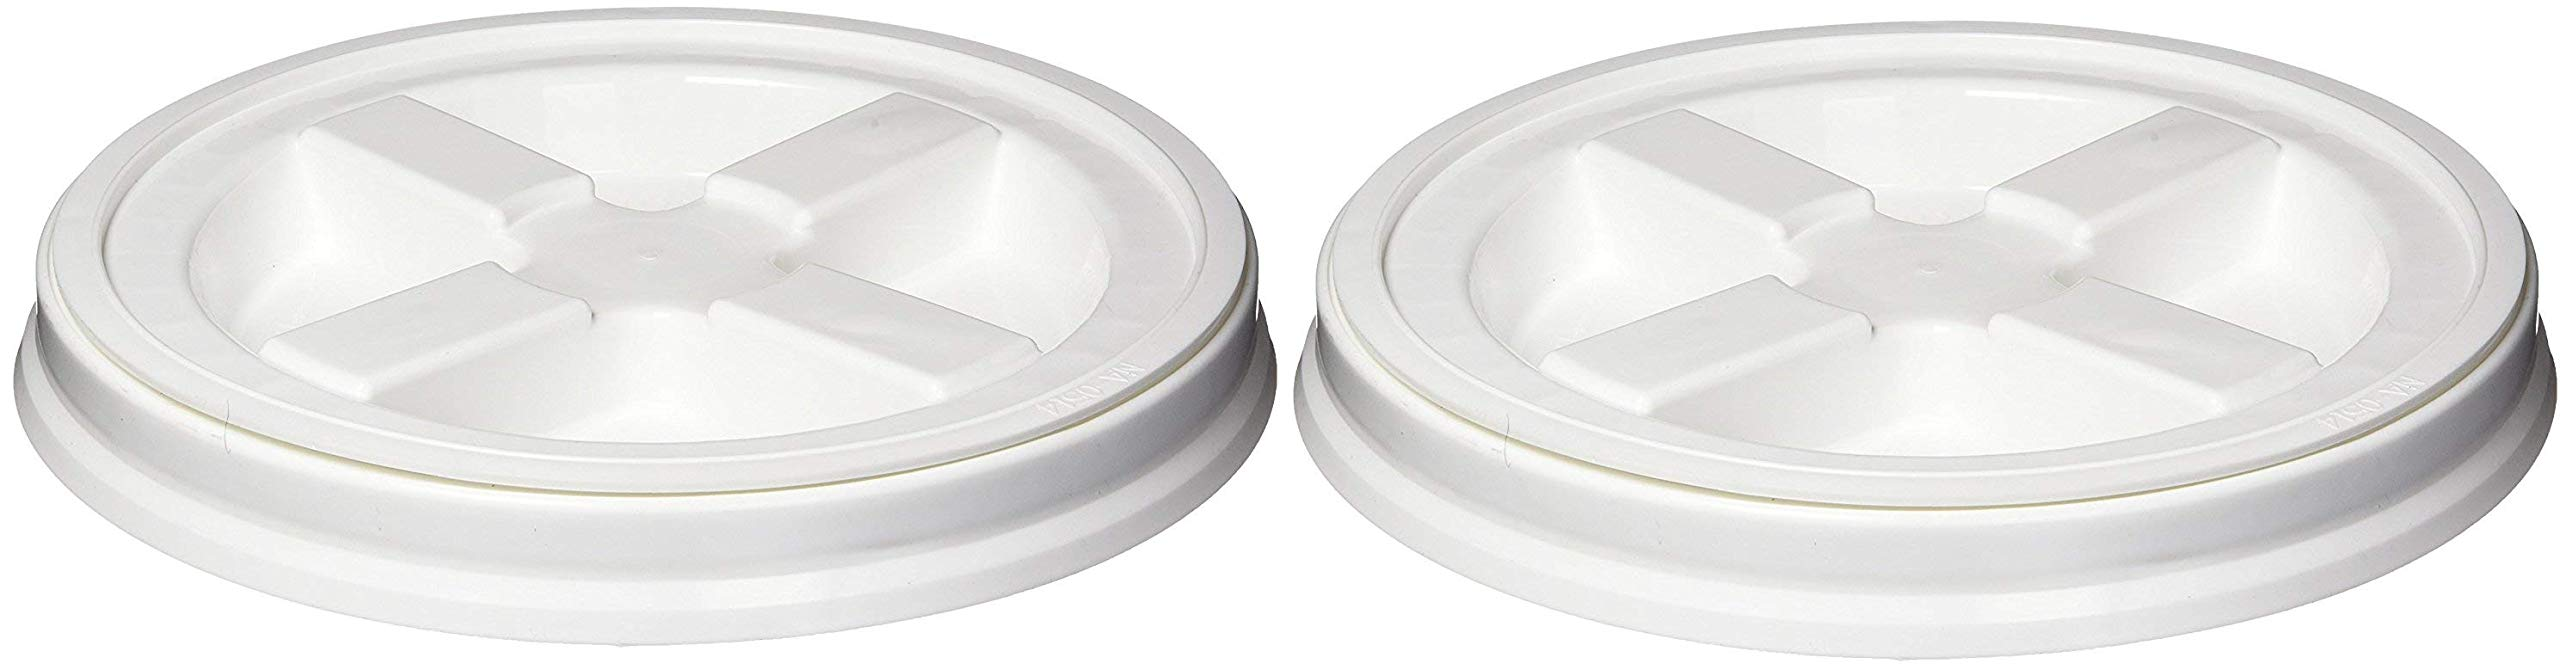 Gamma Seal Lid - White (2-Pack)